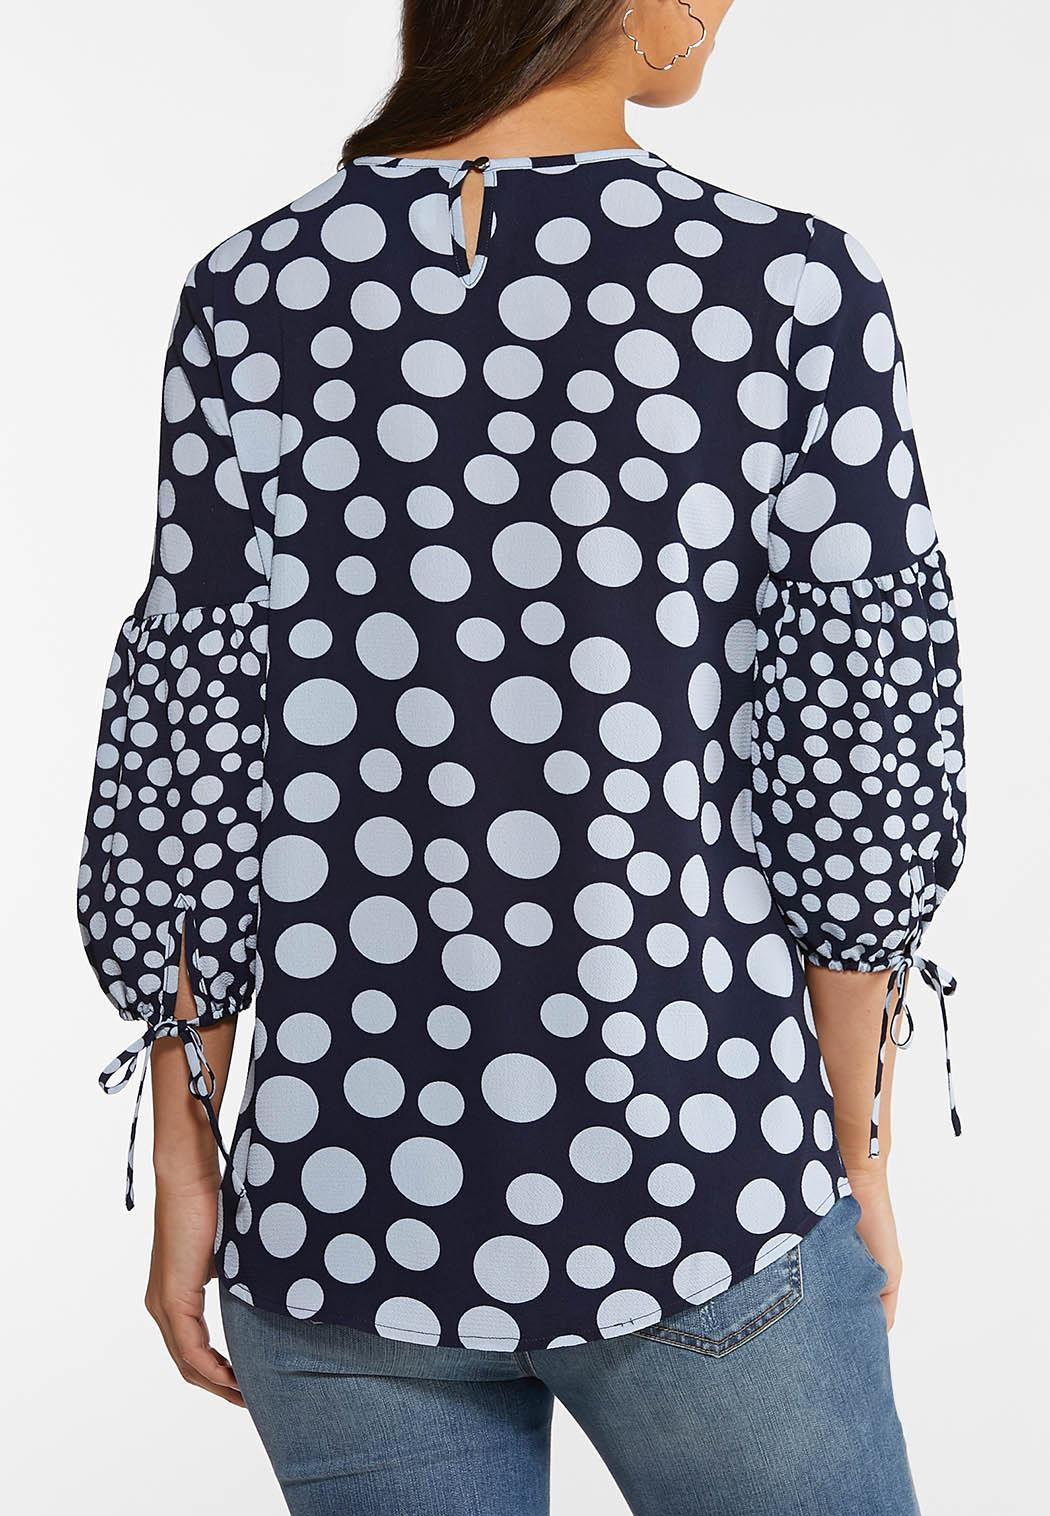 Dotted Balloon Sleeve Top (Item #44106701)